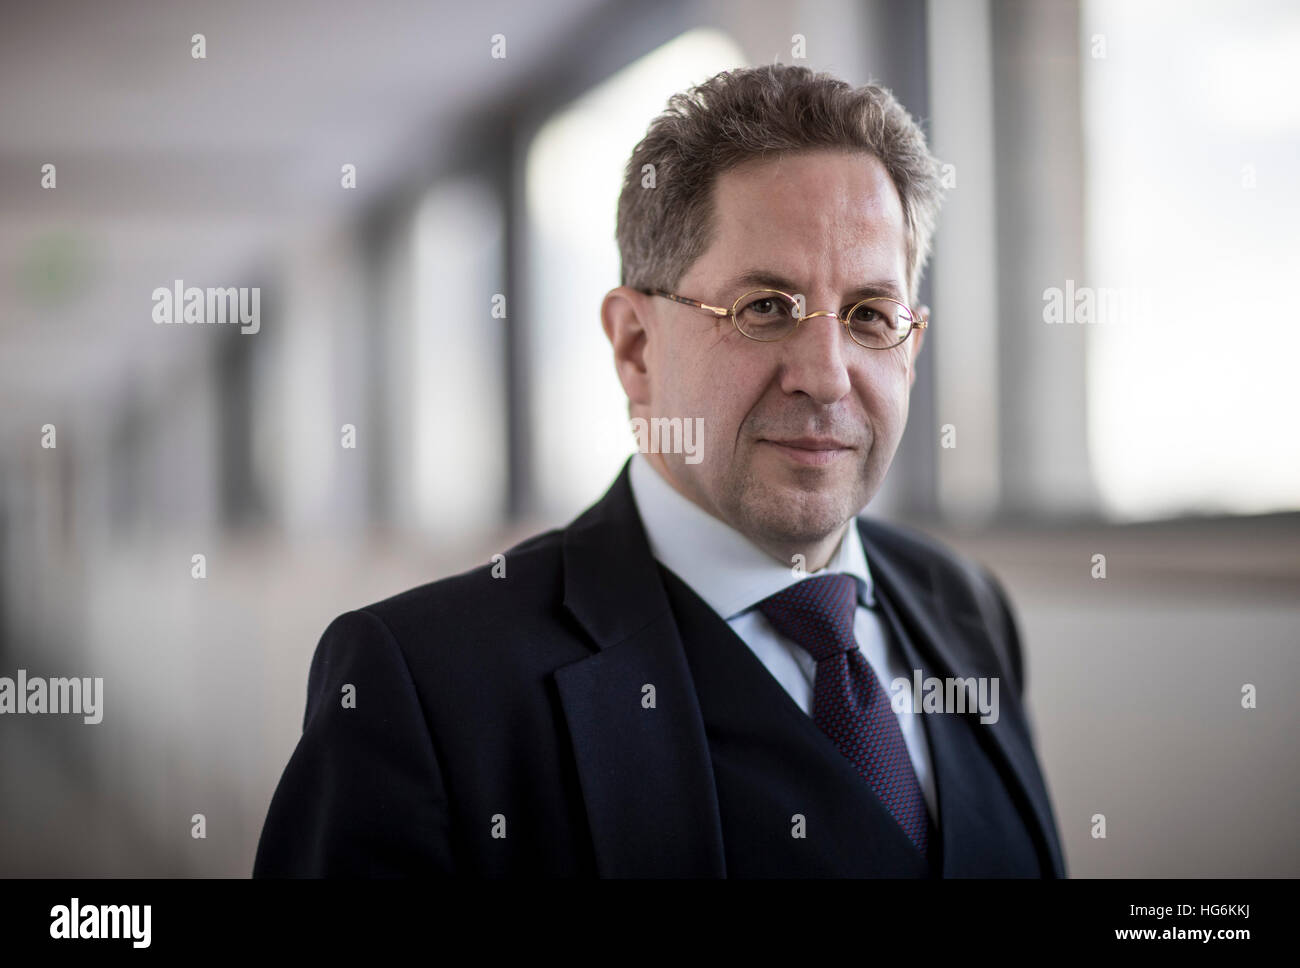 Berlin, Germany. 05th Jan, 2017. Hans-Georg Maassen, President of the Federal Office for the Protection of the Constitution - Stock Image